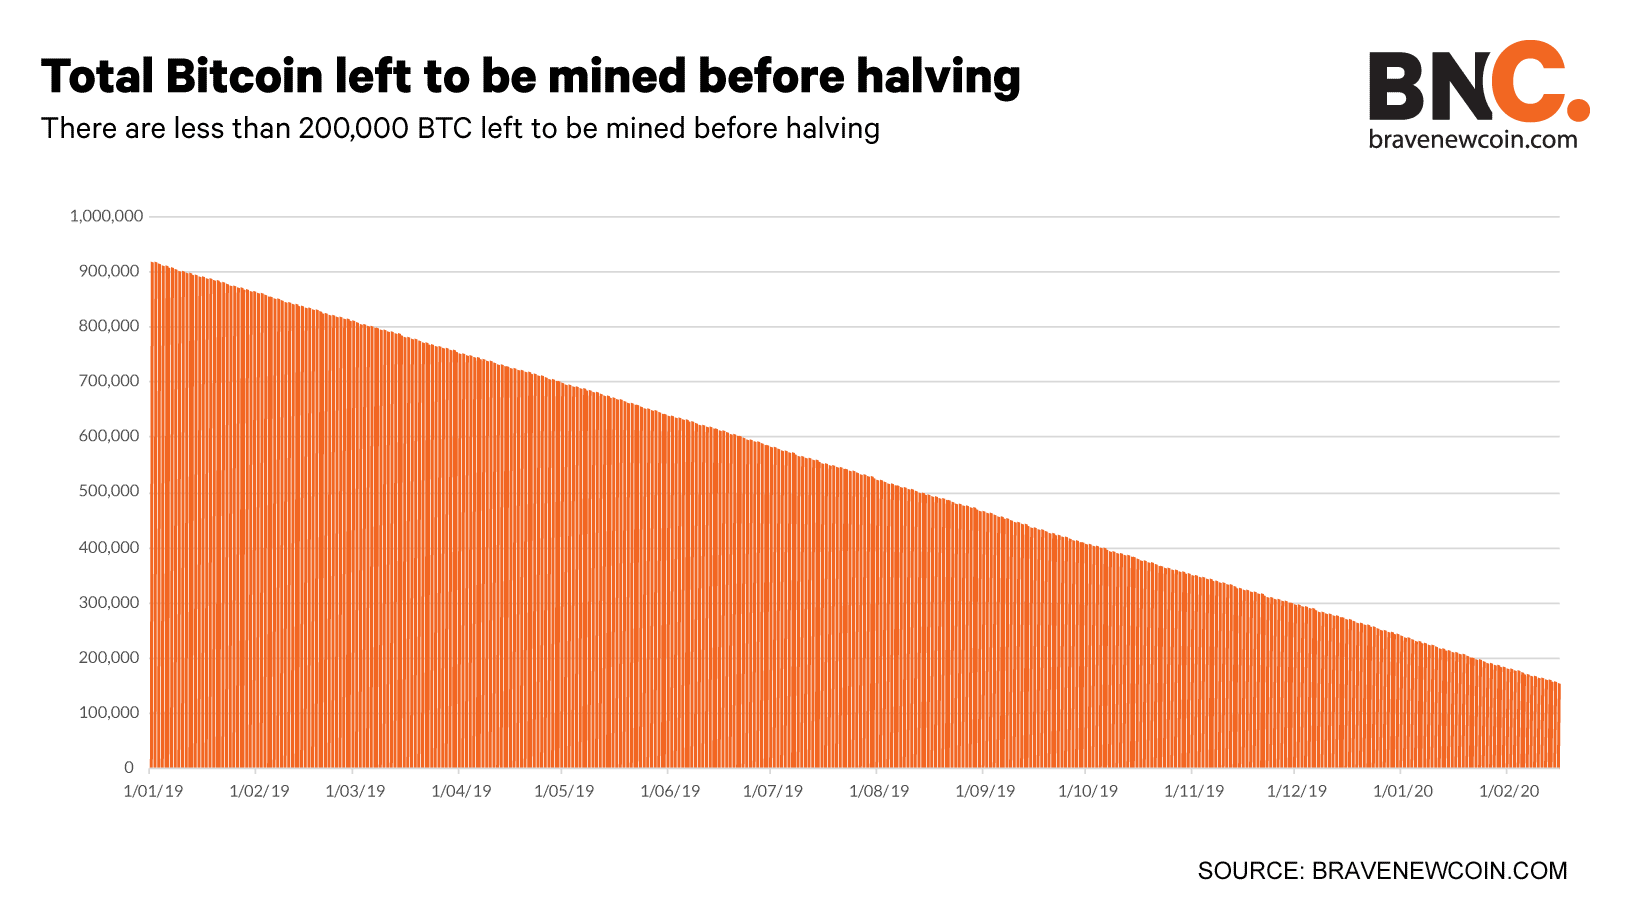 Total-Bitcoin-left-to-be-mined-before-halving-Subheading